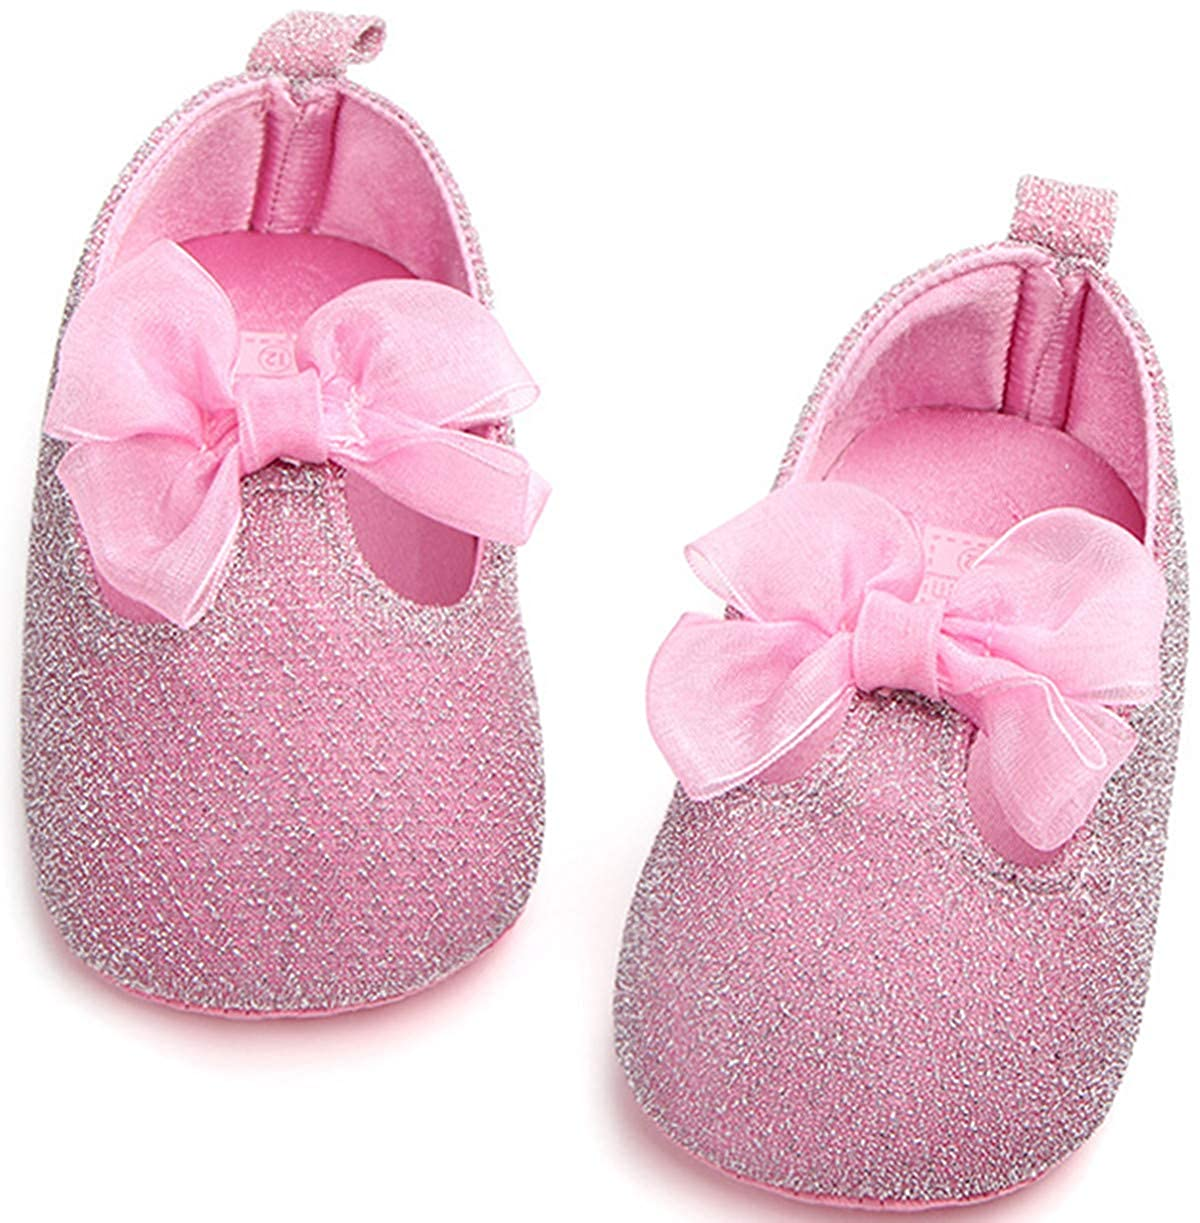 ADIASEN Baby Unisex Baby Shoes,Soft Non-Slip Toddler Shoes,Band Bowknot Infants Shoes,Newborn Shoes for Baby Girl Boy,Spring//Fall Baby Shoes Glisten